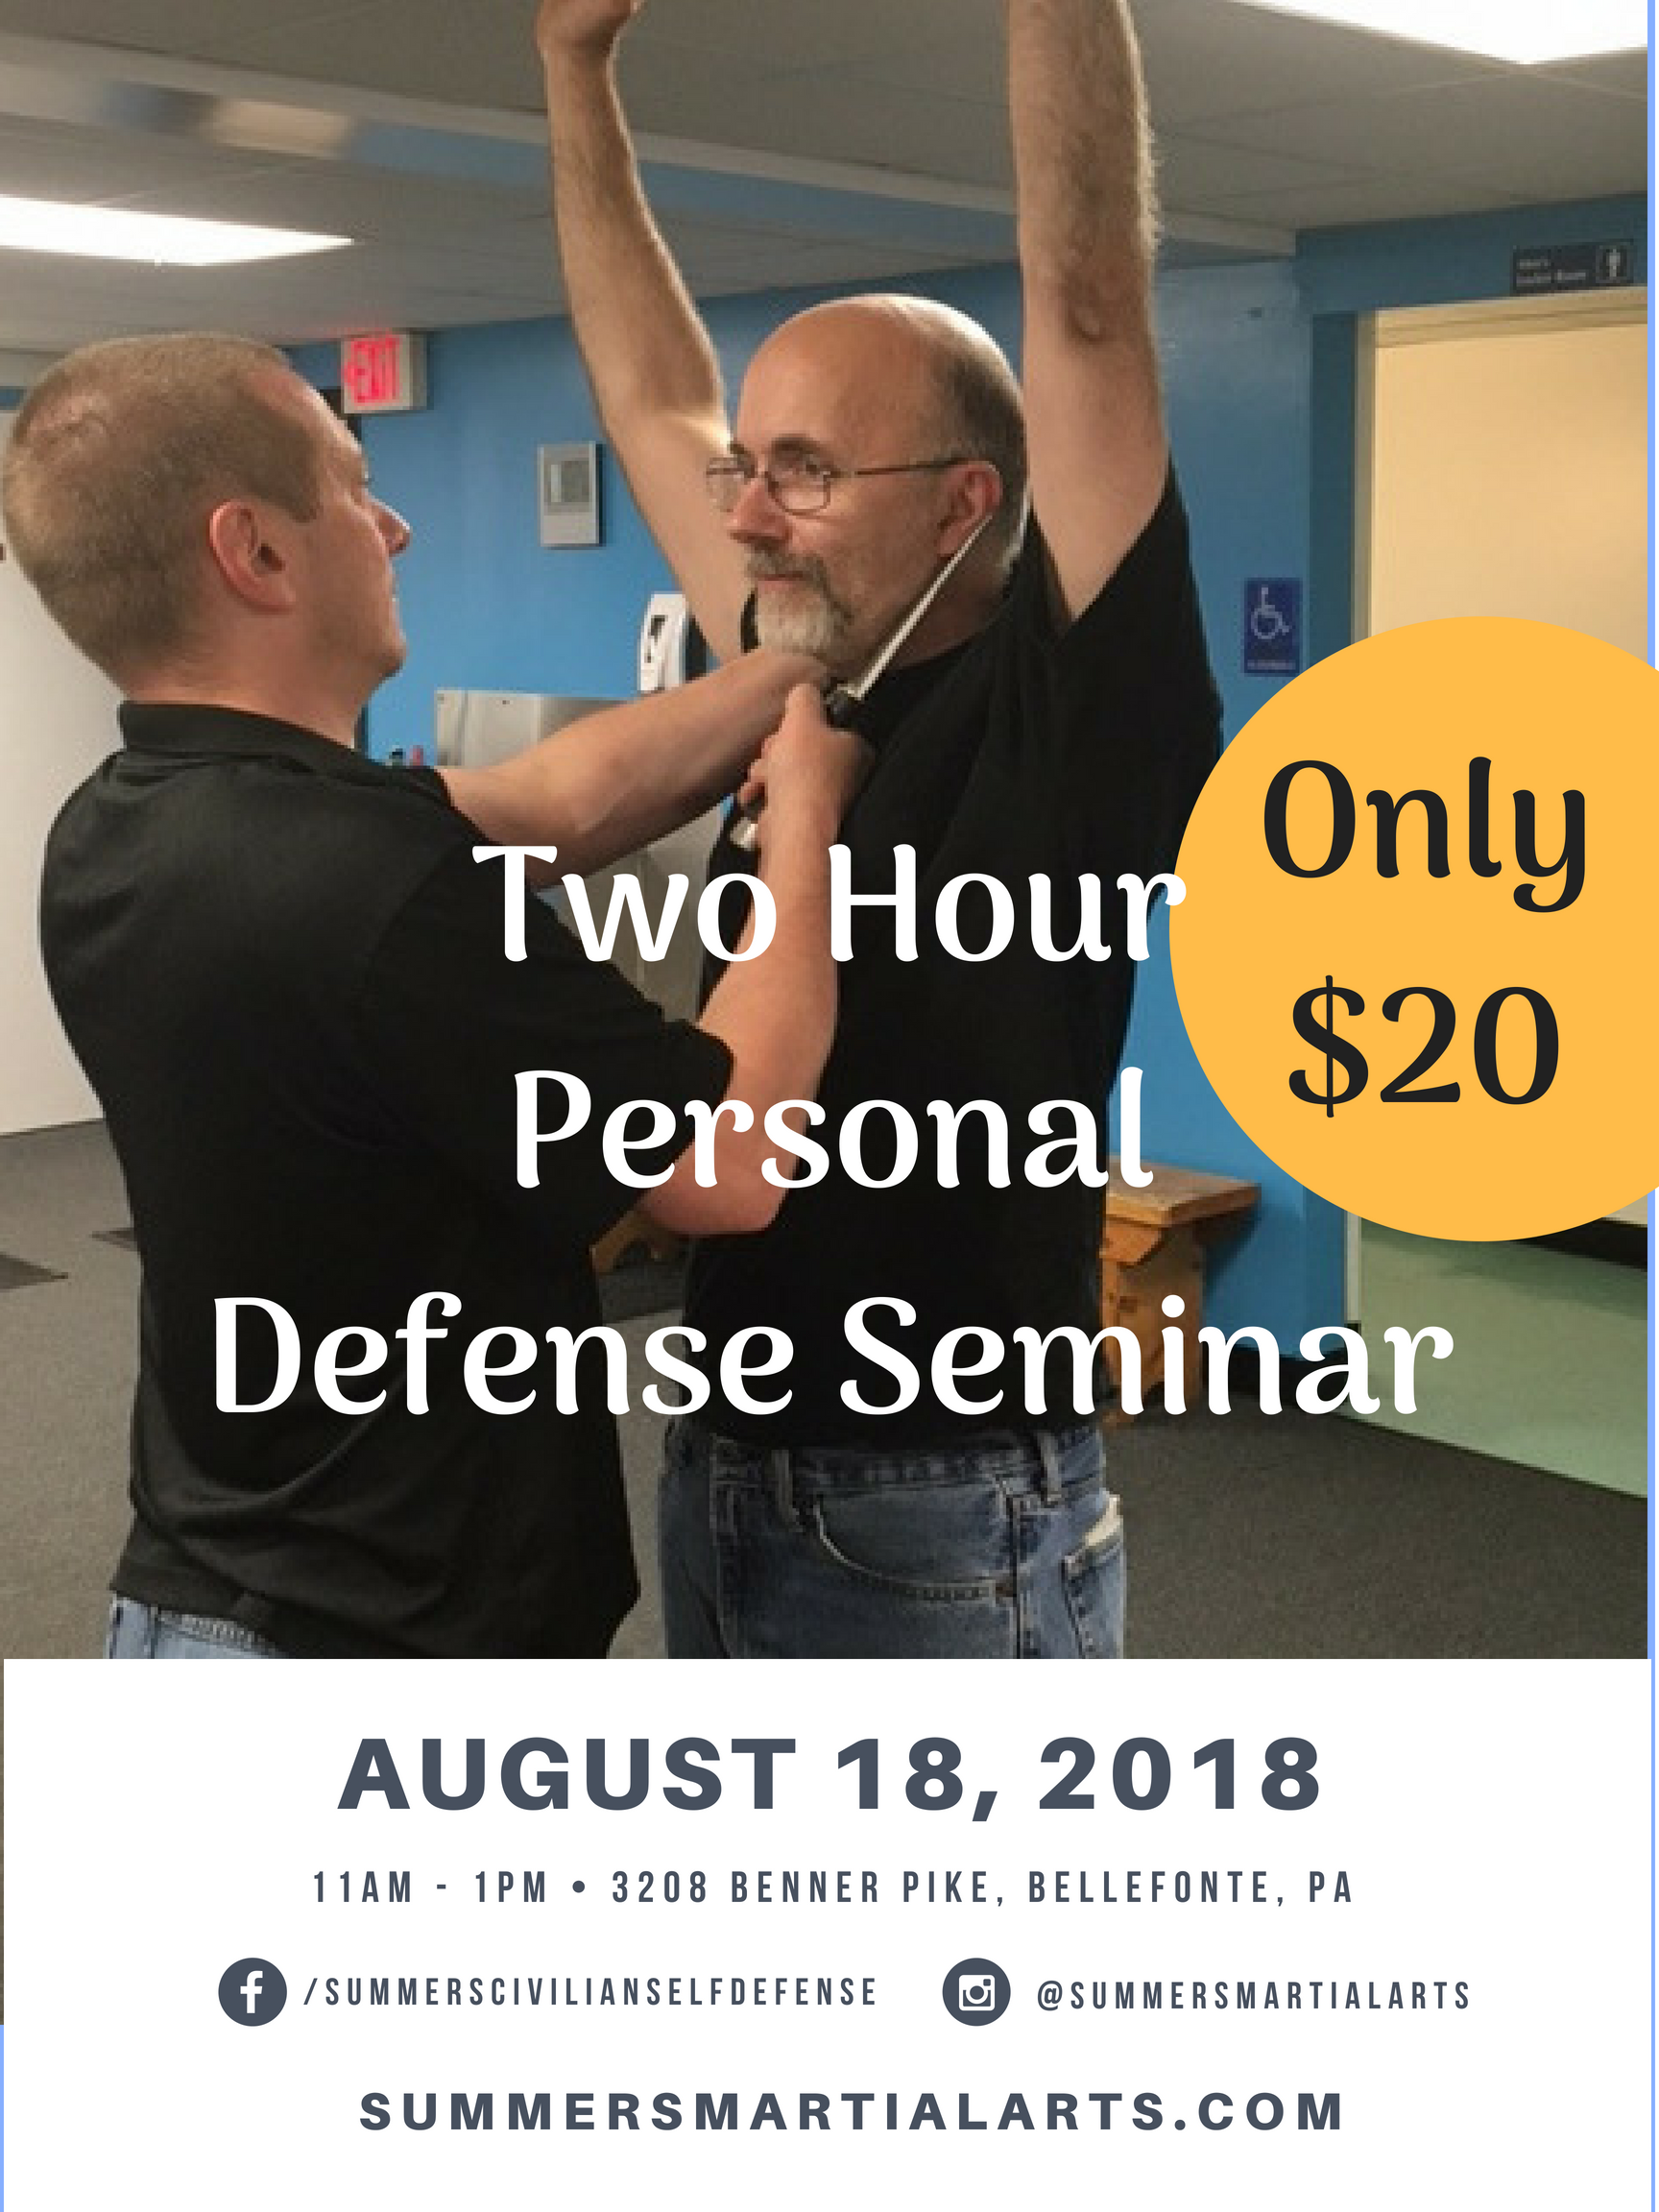 two hour personal defense seminar, seminar, personal defense, bellefonte, benner pike, limited time